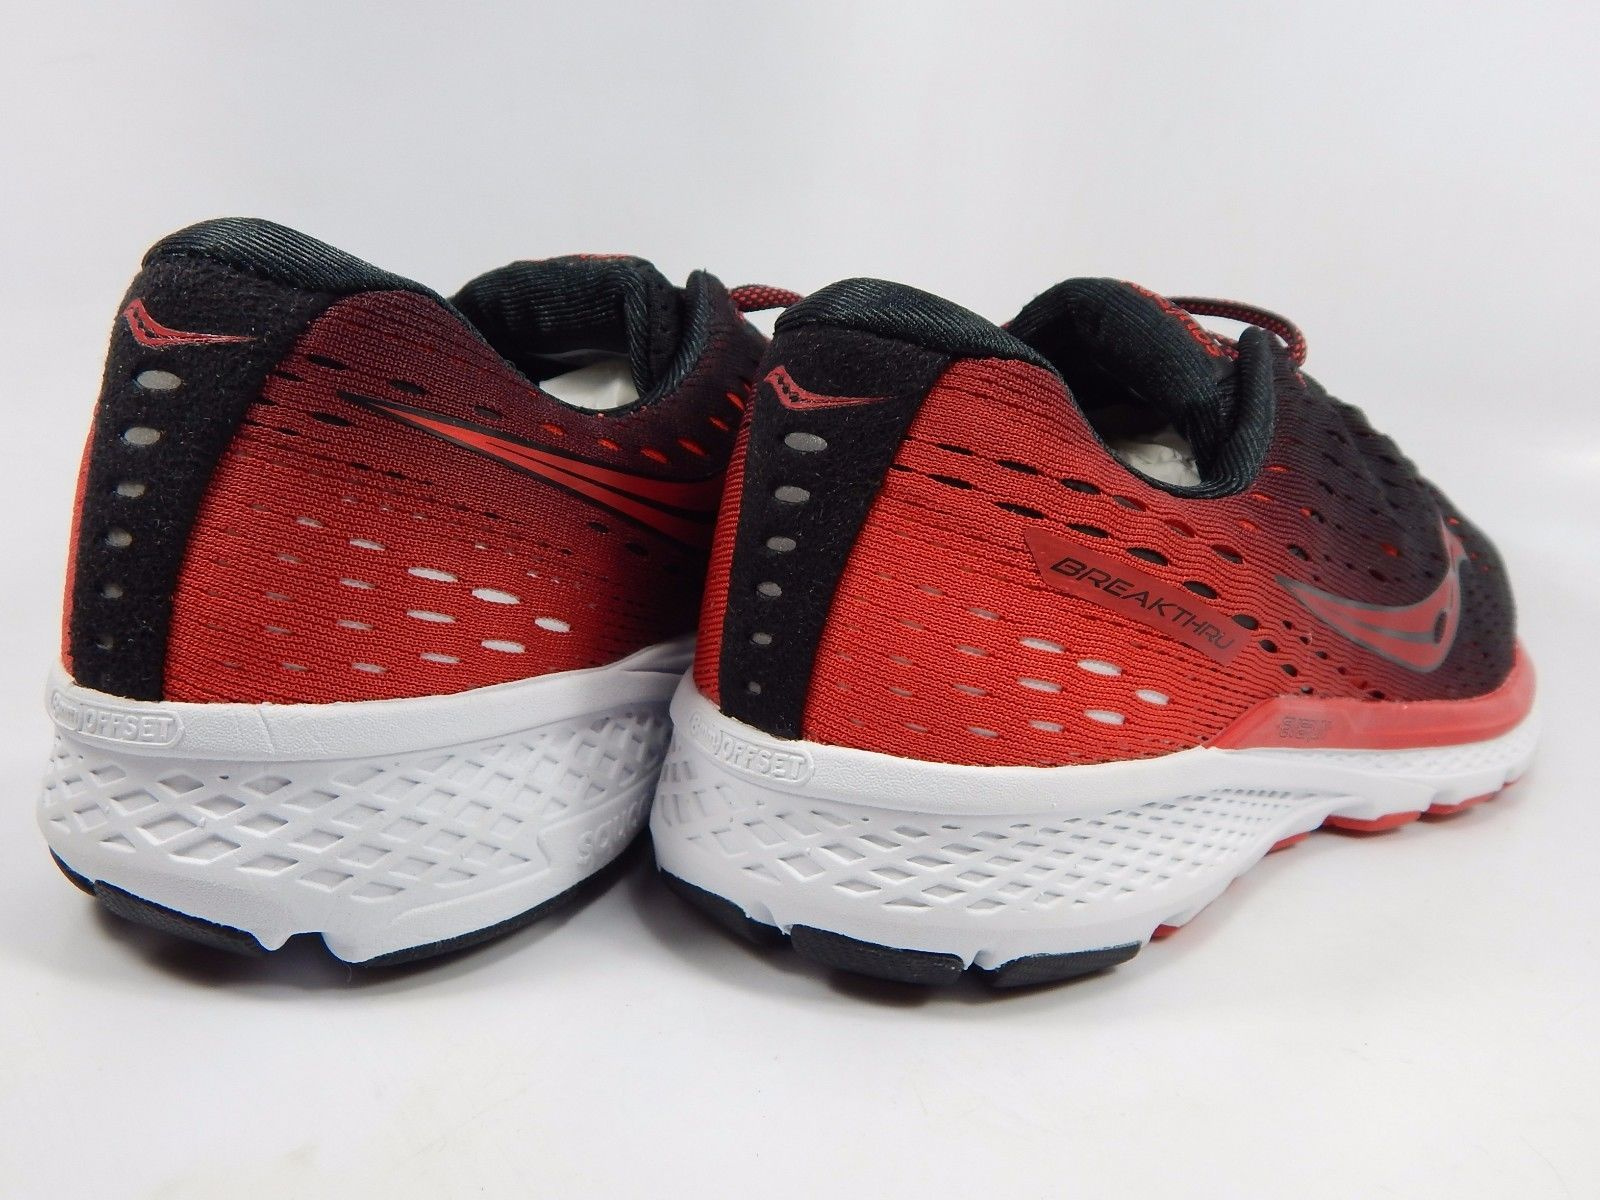 Saucony Breakthru 3 Men's Running Shoes Size US 9 M (D) EU 42.5 Red S20358-1